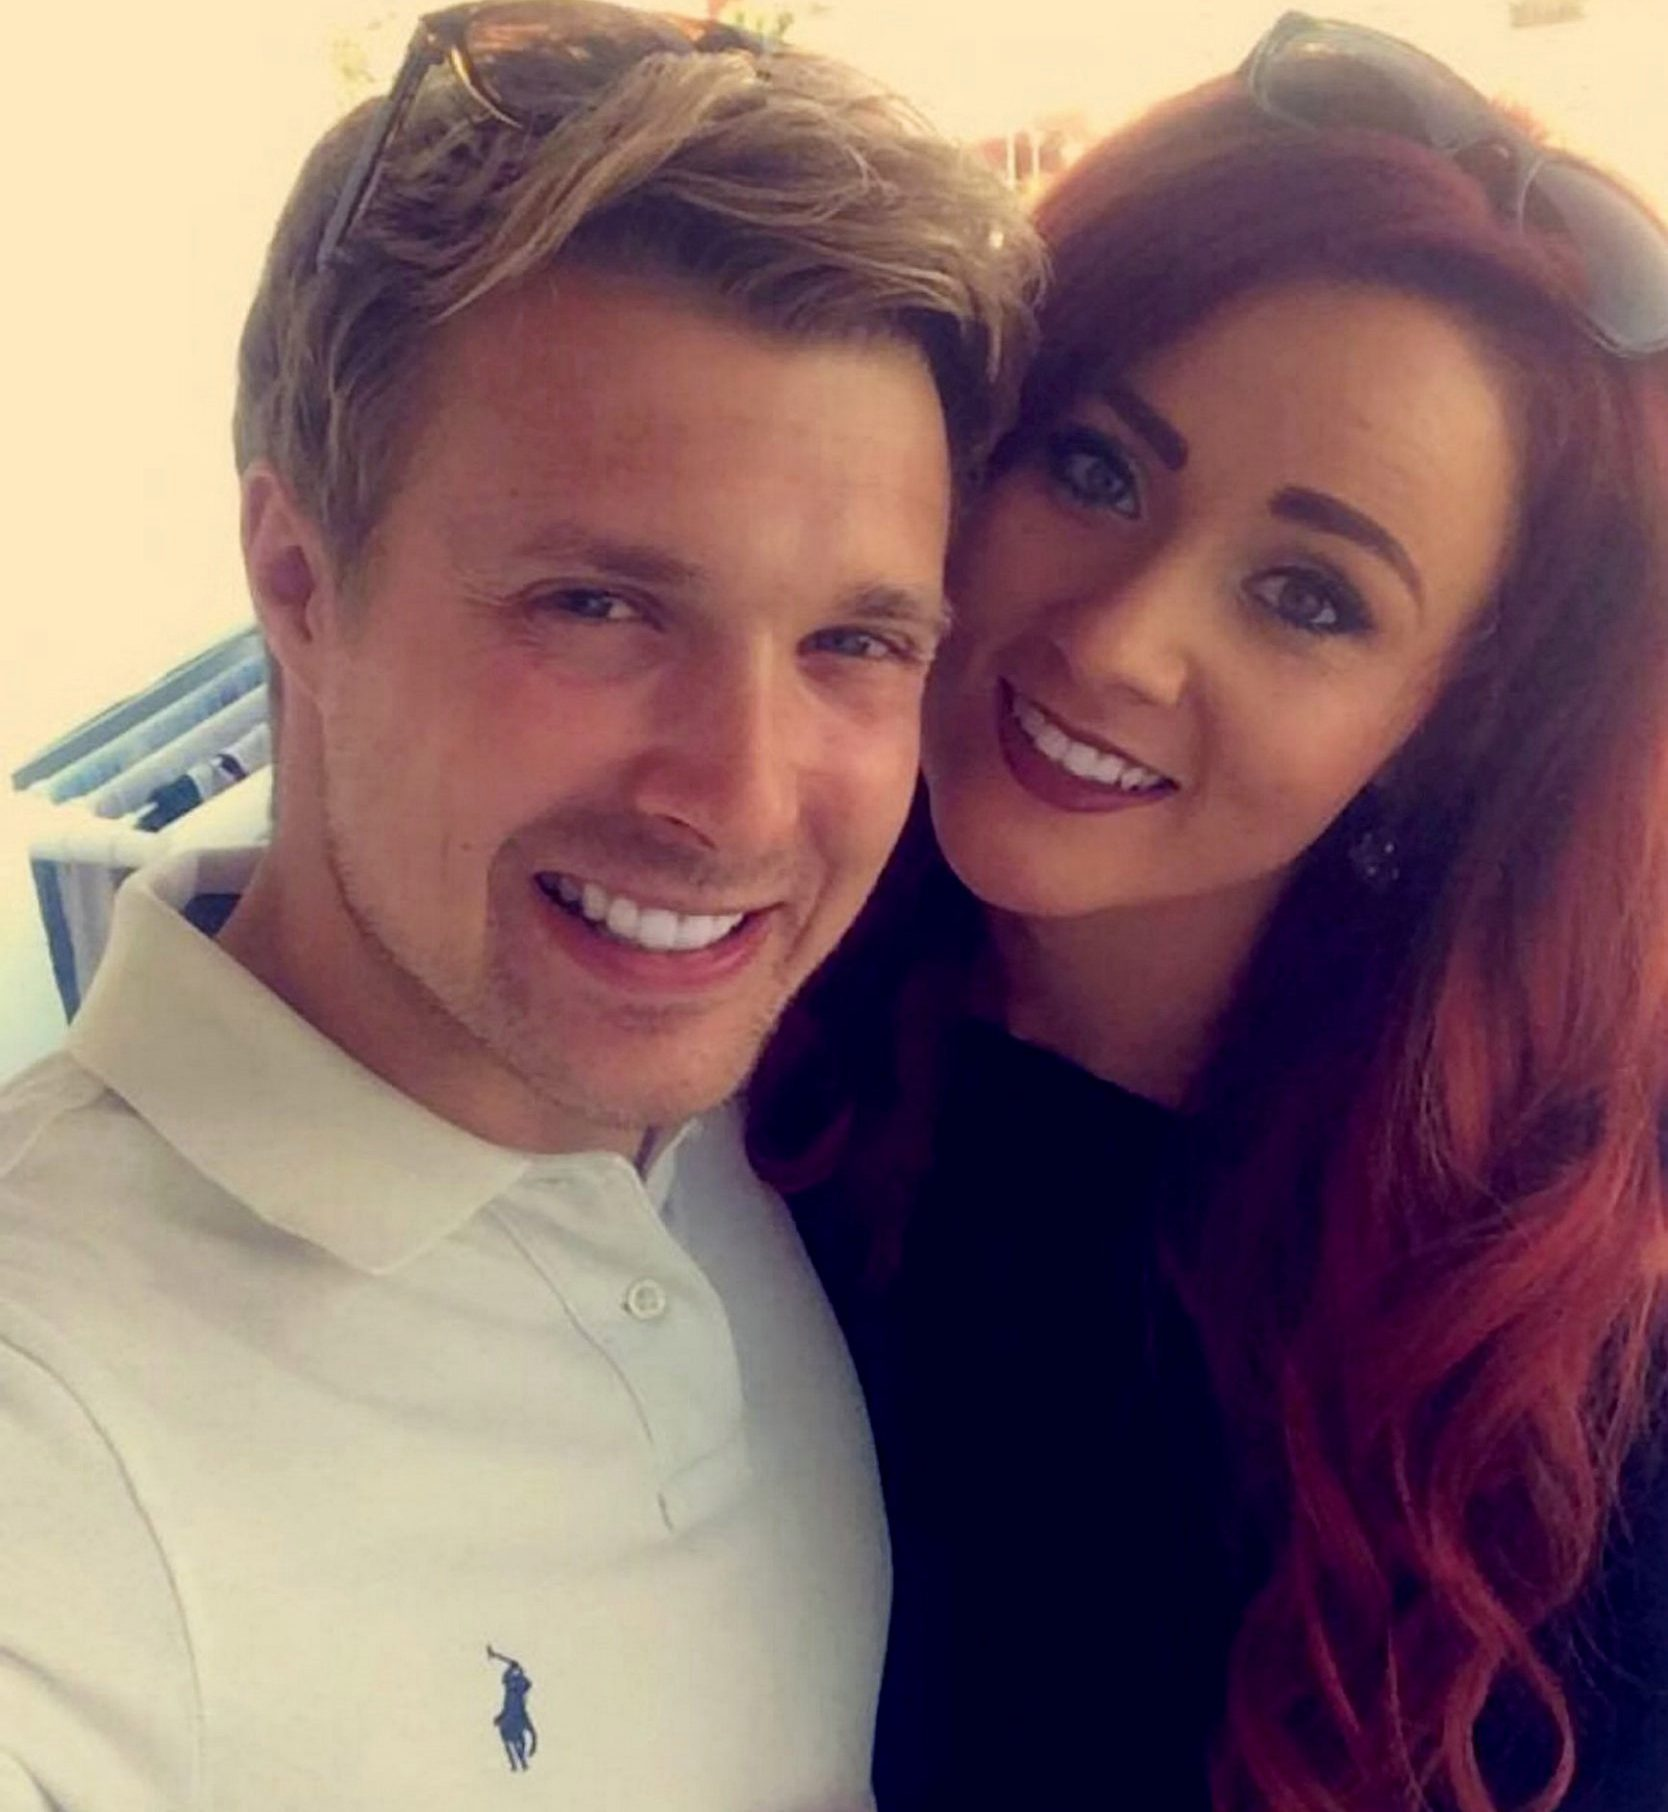 Craig Telfer, 27, with his fiance Shelley Neil, 26.See SWNS story SWSCtumour. A schoolteacher says he suffered excruciating headaches for six months before he was diagnosed with a brain tumour. Craig Telfer, 27, said he was taking paracetamol for his agonising headaches before going to the GP who prescribed him with something stronger. But the PE teacher continued to suffer the agonising pain and while on holiday in Florida in 2017 his speech even started to slur. After an eye test in December 2017 revealed he was losing his peripheral vision, Craig decided enough was enough and went to A&E. He was told he had a brain tumour and underwent emergency surgery just days later to remove the mass.